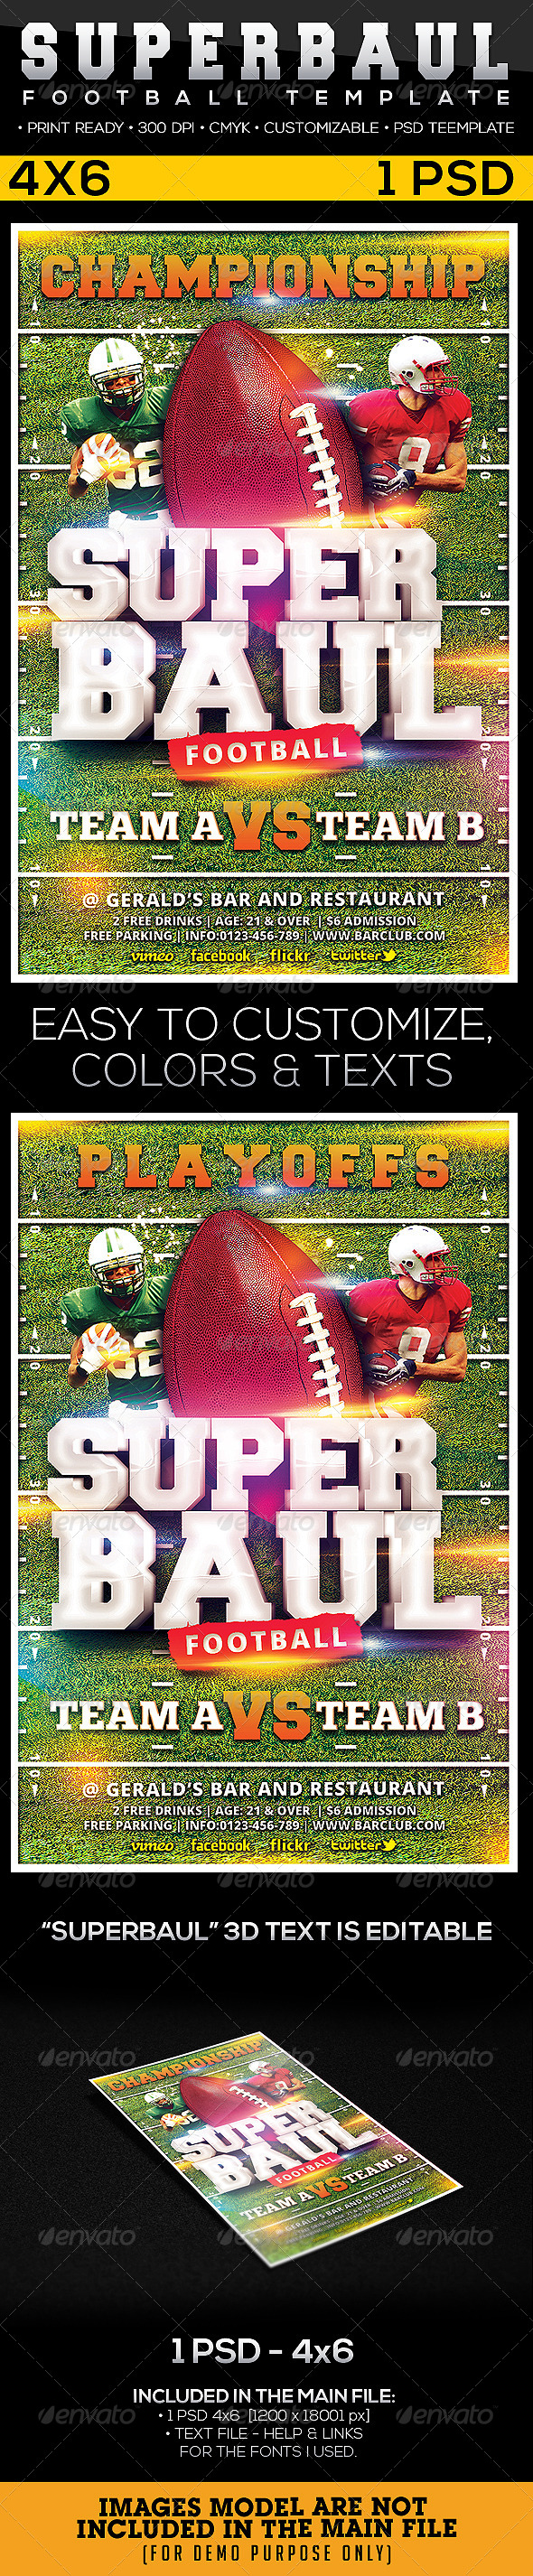 GraphicRiver Superboul Football Flyer Template 6526146